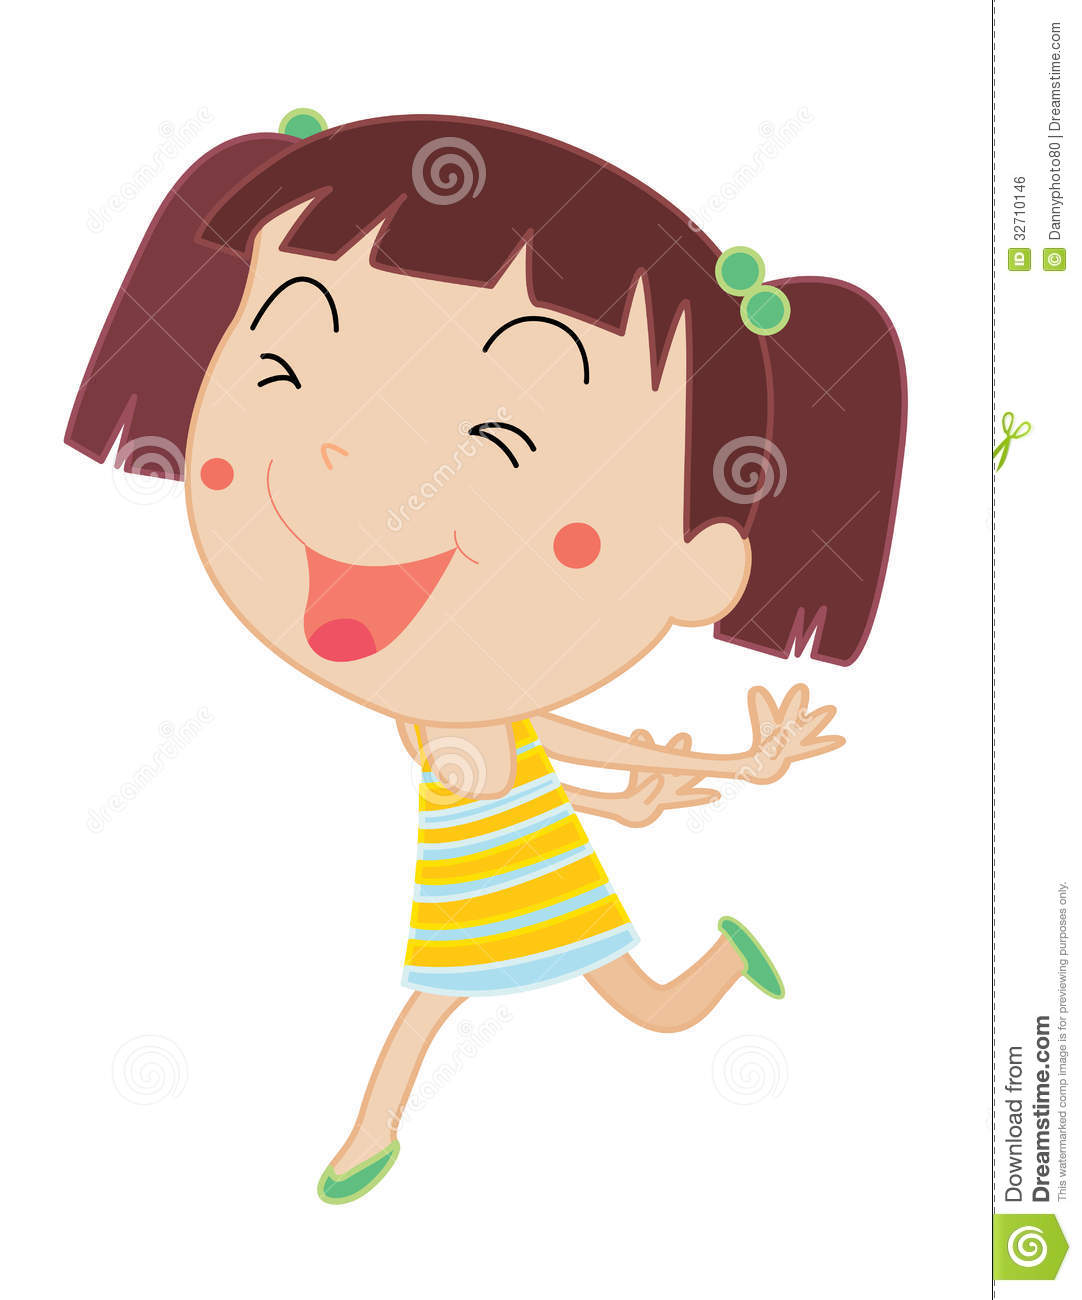 Baby girl clipart cimple. Simple child cartoon overweight